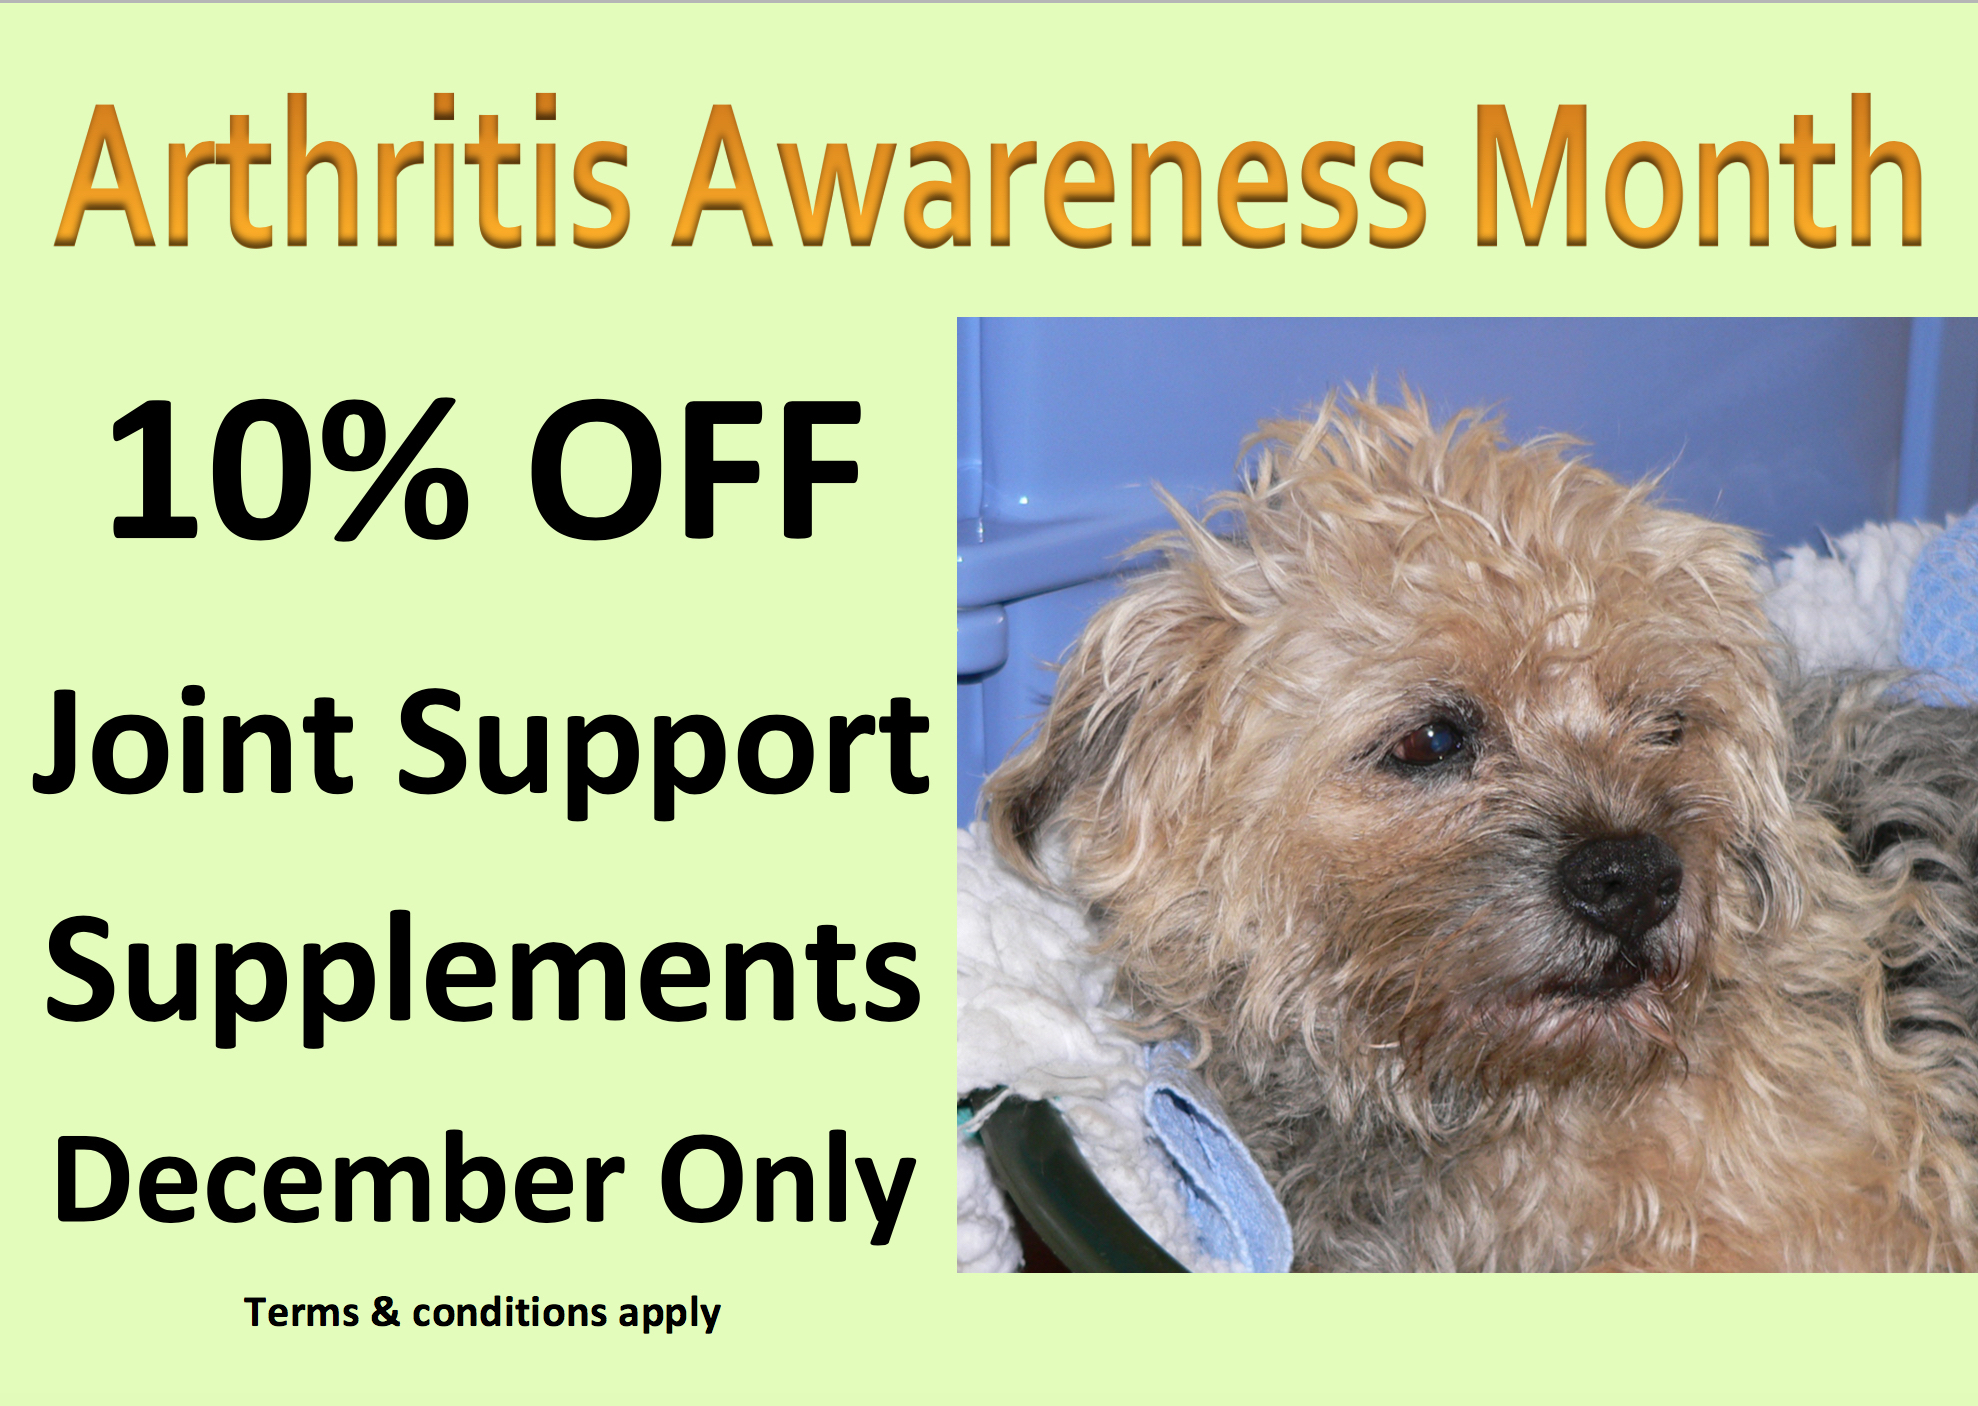 Arthritis Awareness